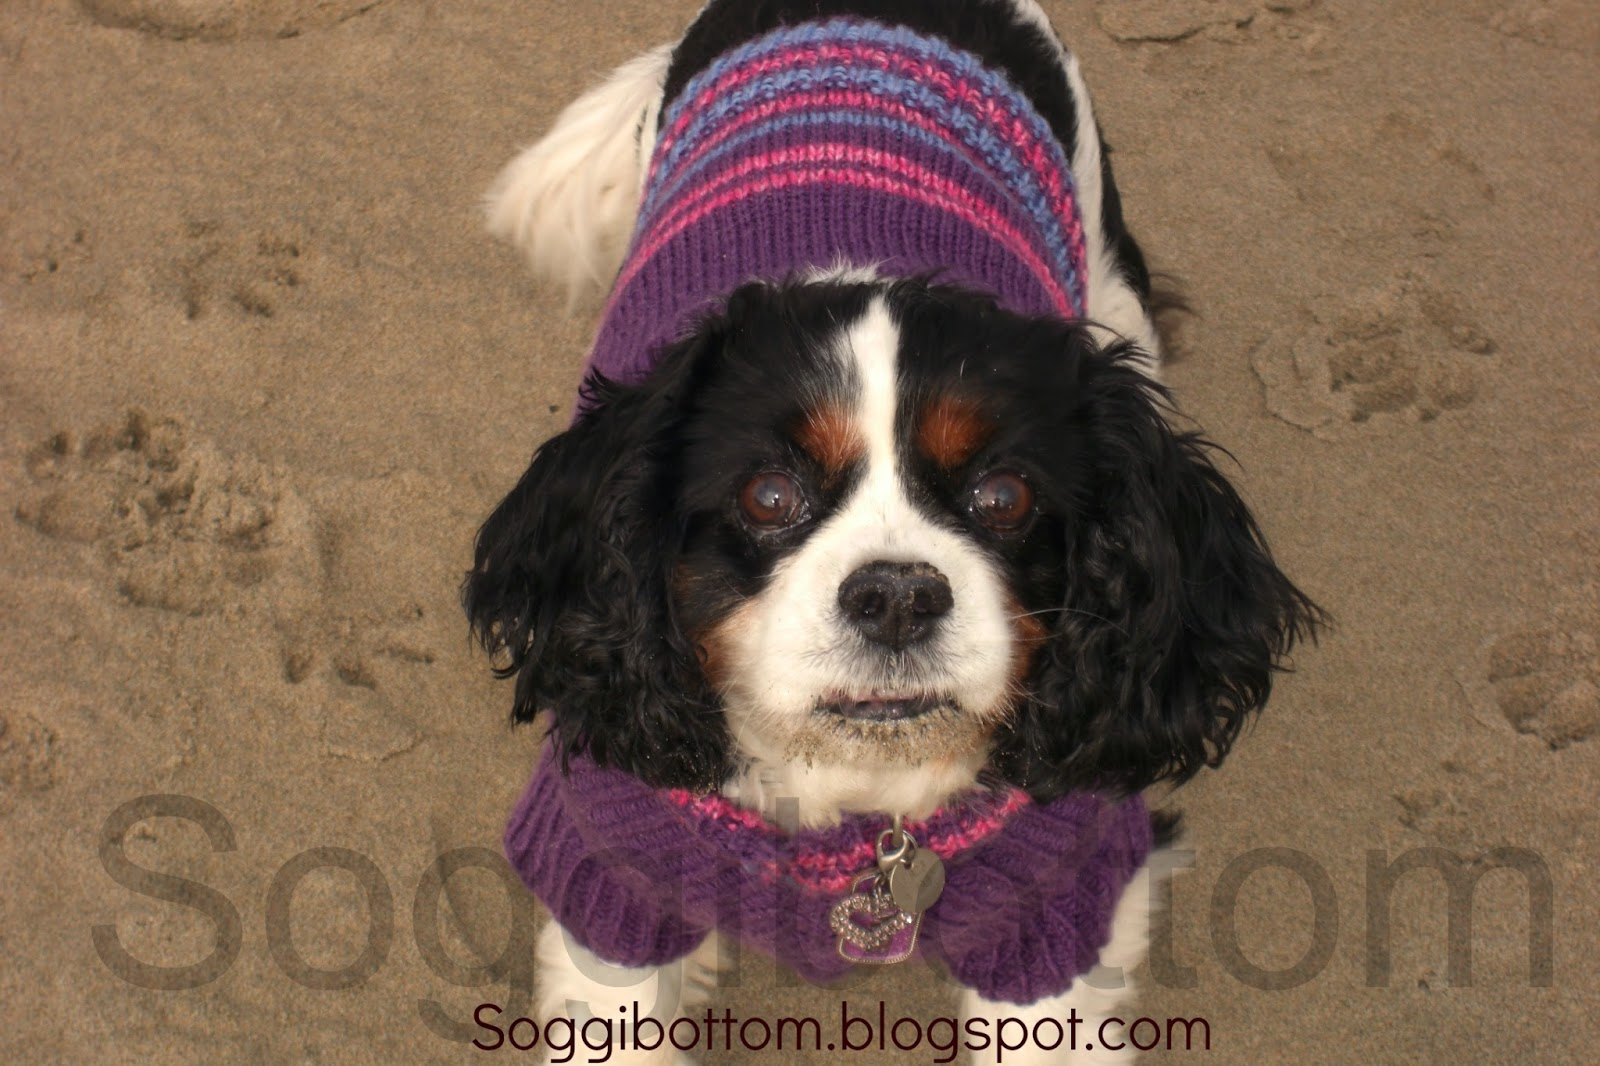 Soggibottom: Free Soggibottom knitted dog sweater pattern